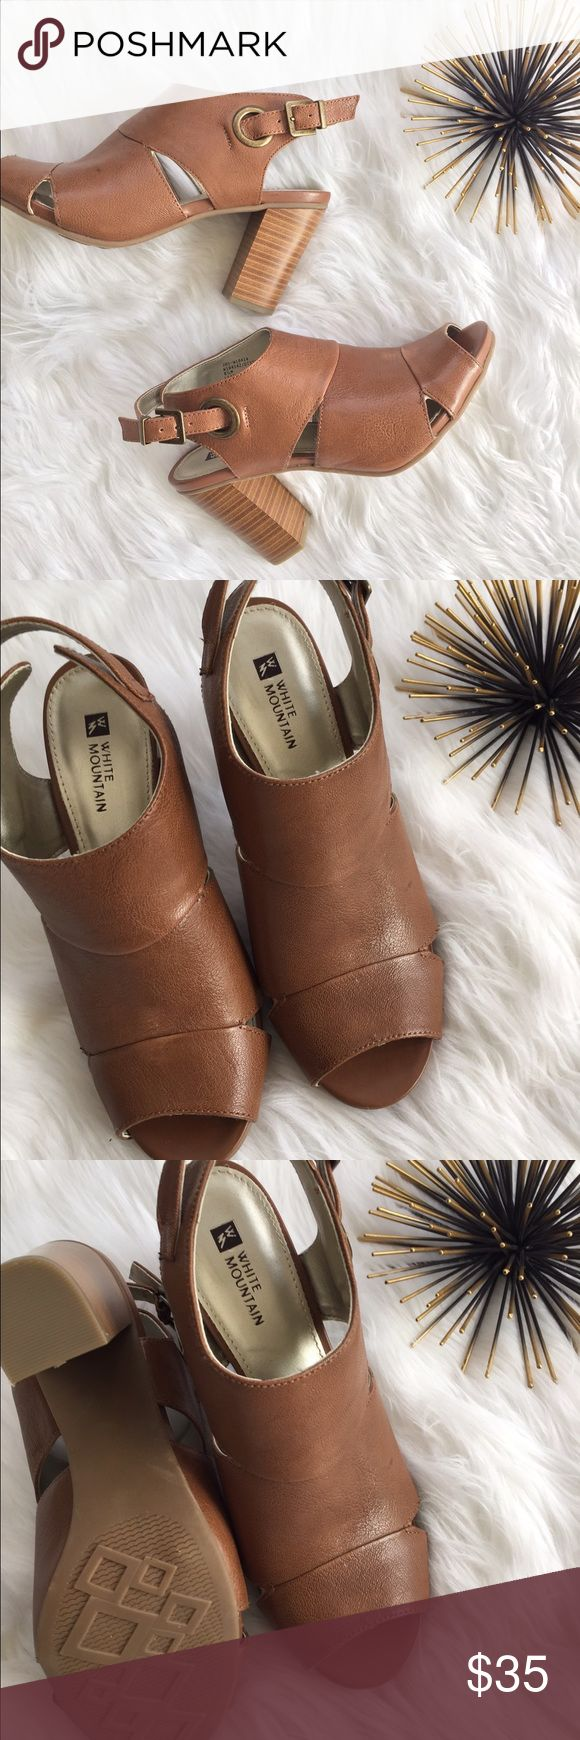 New White Mountain Stacked Heel Peep Toe Bootie These White Mountain Shoes are a size 8.5 and are new, never worn.  There is a small mark on the one shoe from storage, it will probably come off with a little TLC. white mountain Shoes Ankle Boots & Booties